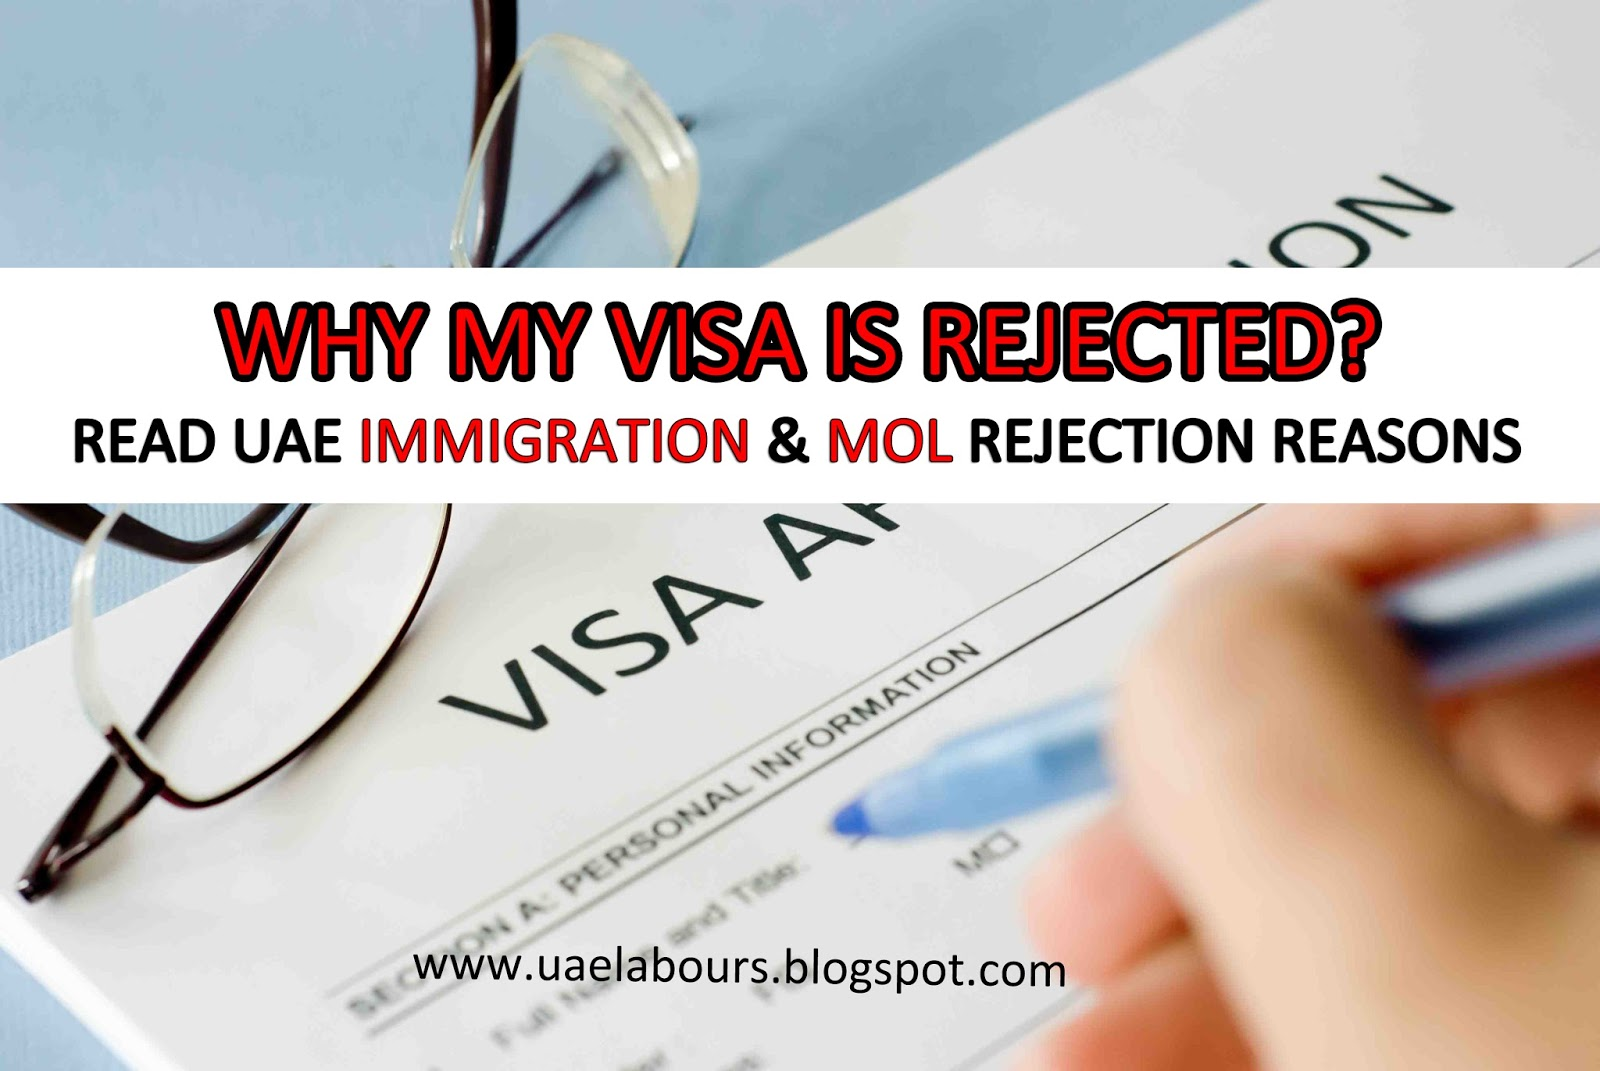 Uae visa application rejected 2016 uae labours visa rejected by immigration visa rejected by mol visa approval rejected in uae yelopaper Images